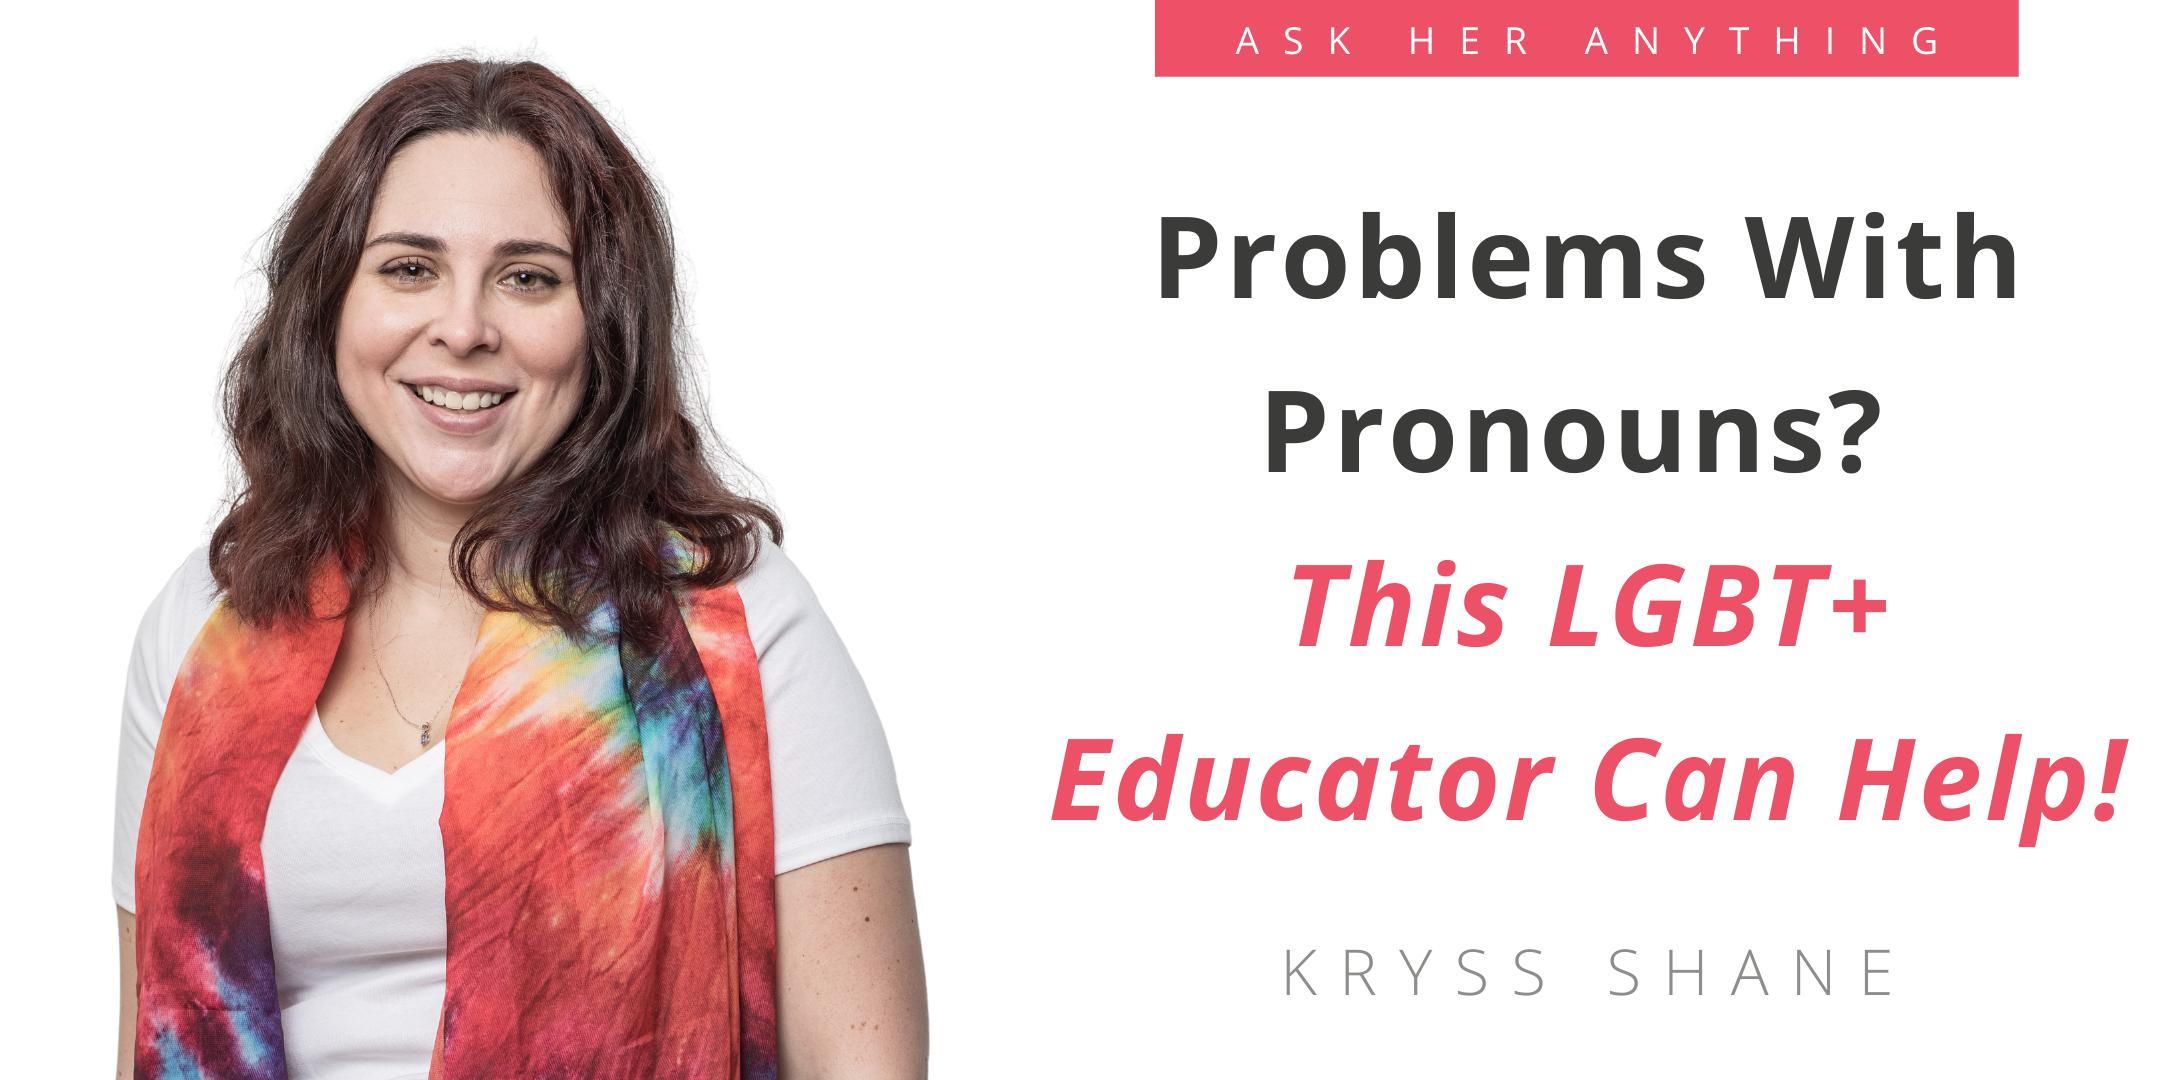 Problems With Pronouns?  This LGBT+ Educator Can Help!